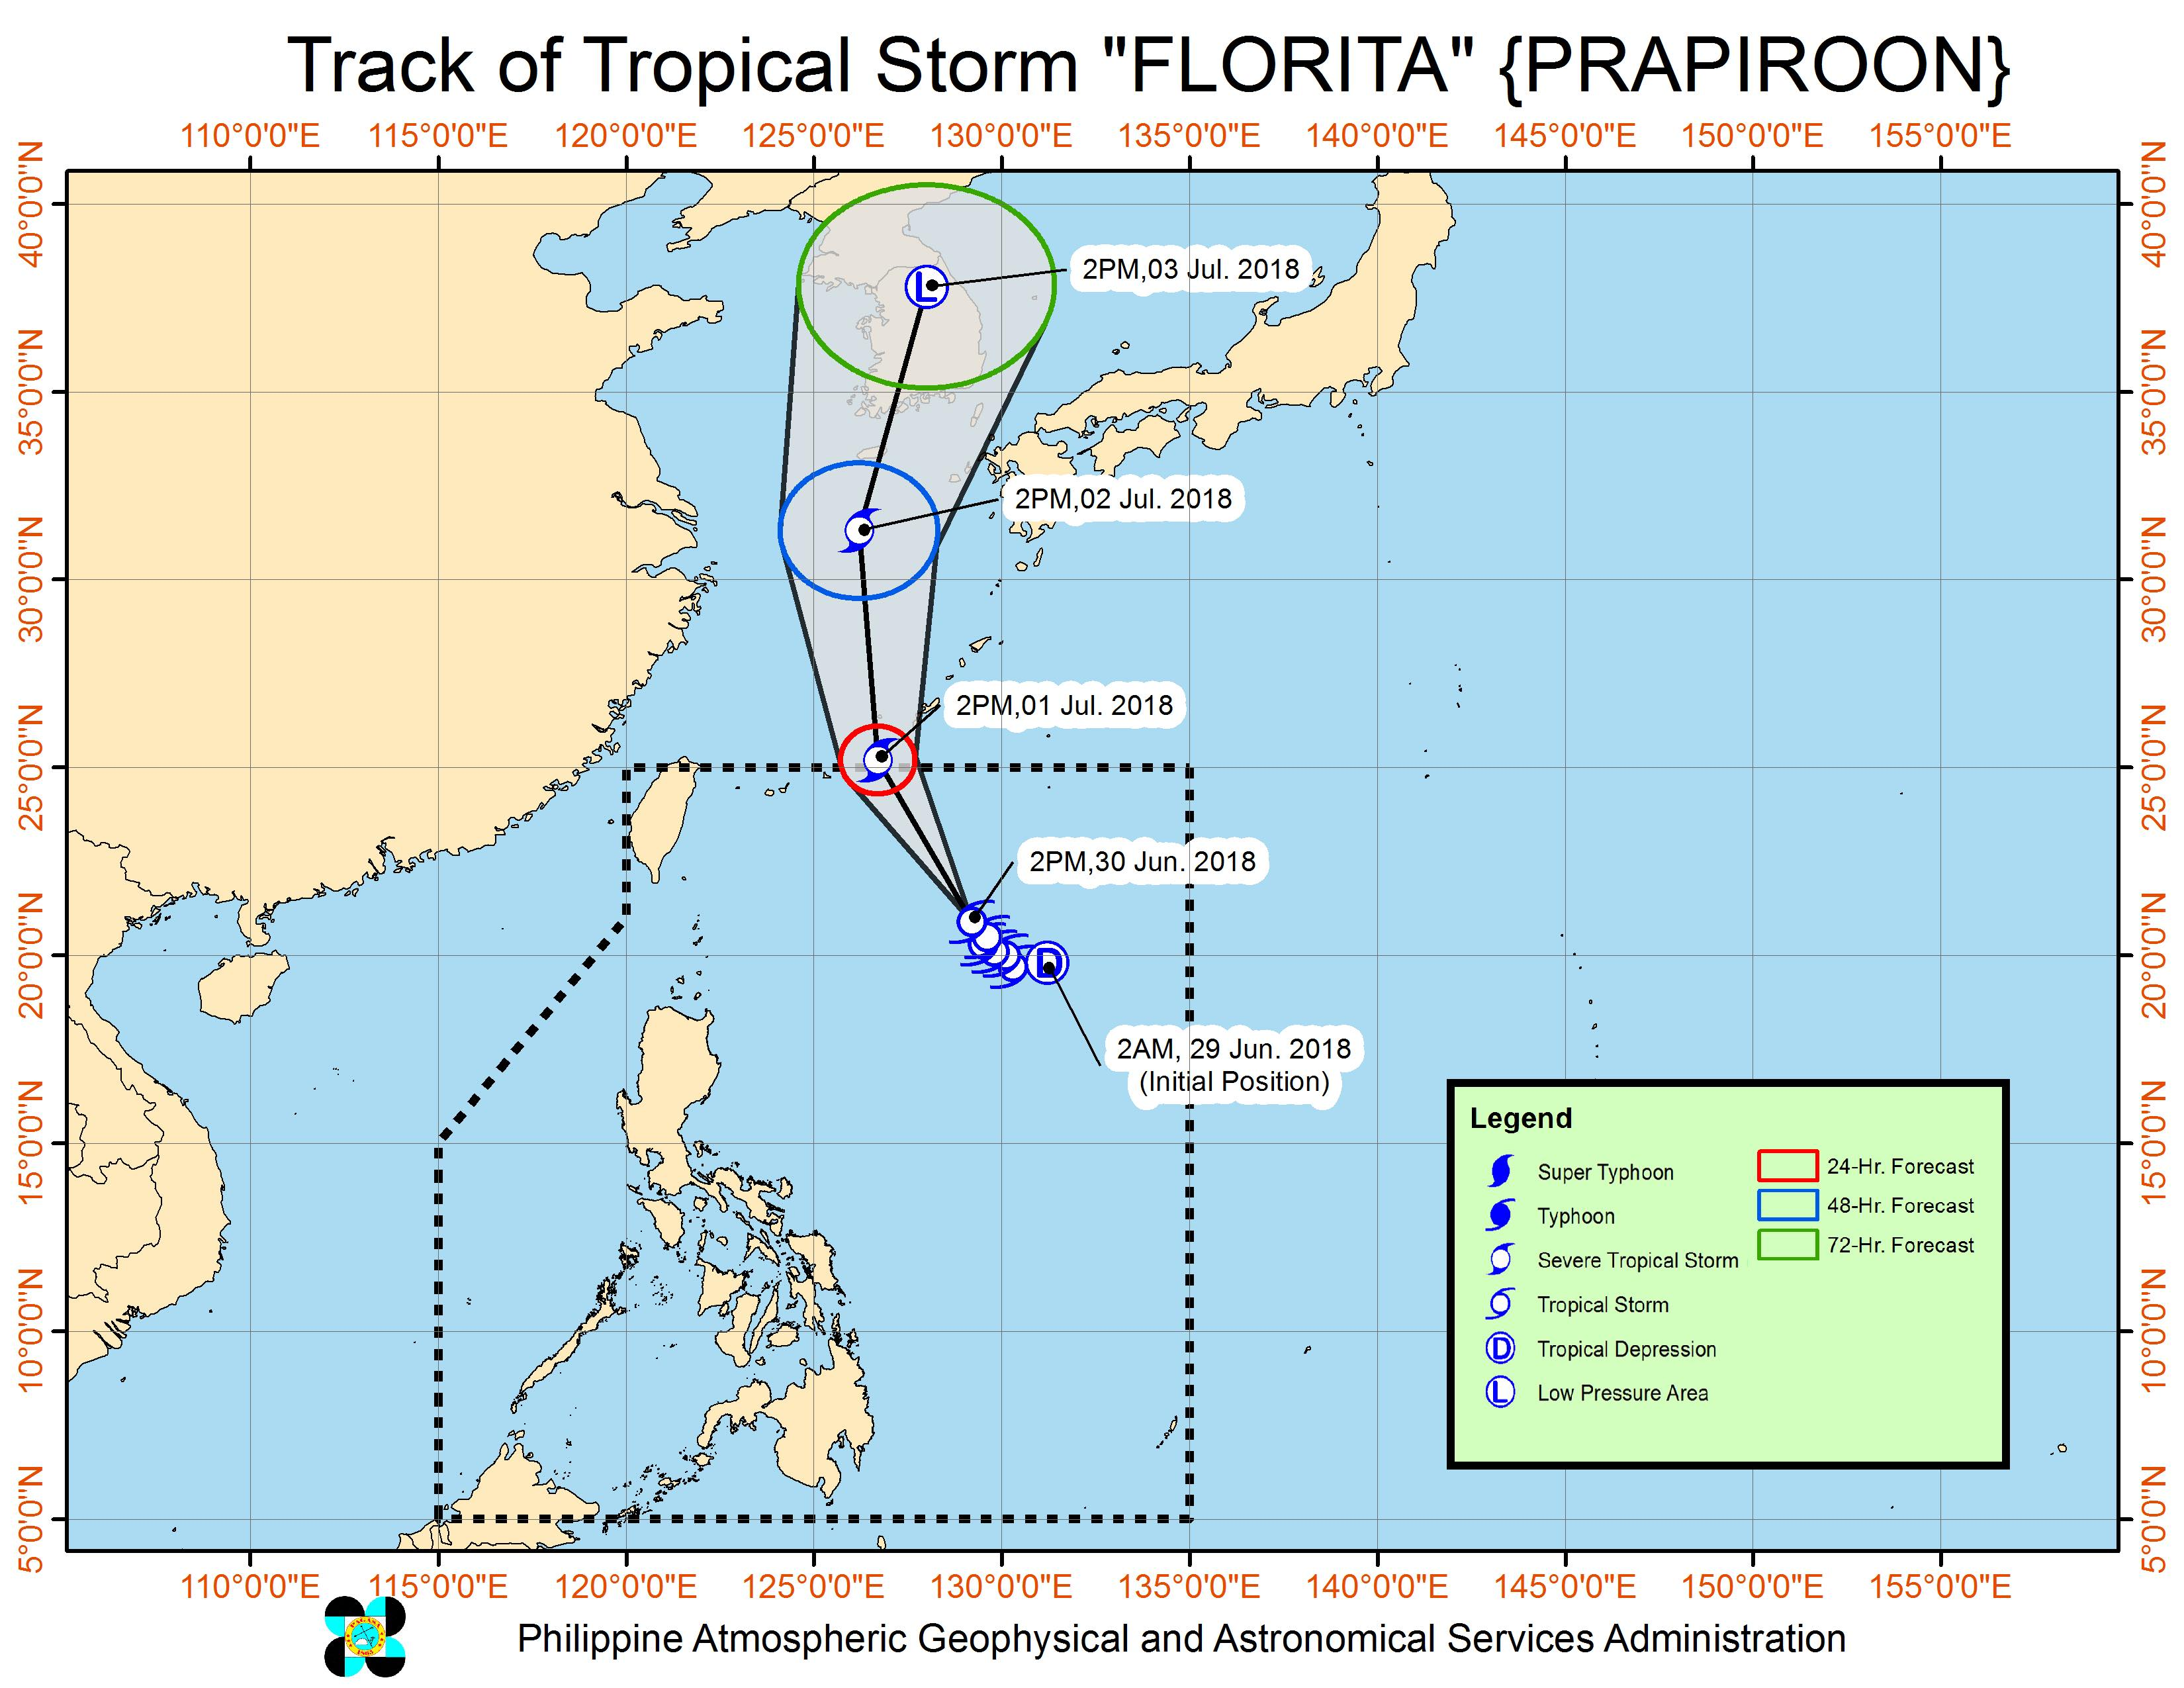 Forecast track of Tropical Storm Florita (Prapiroon) as of June 30, 2018, 4 pm. Image courtesy of PAGASA